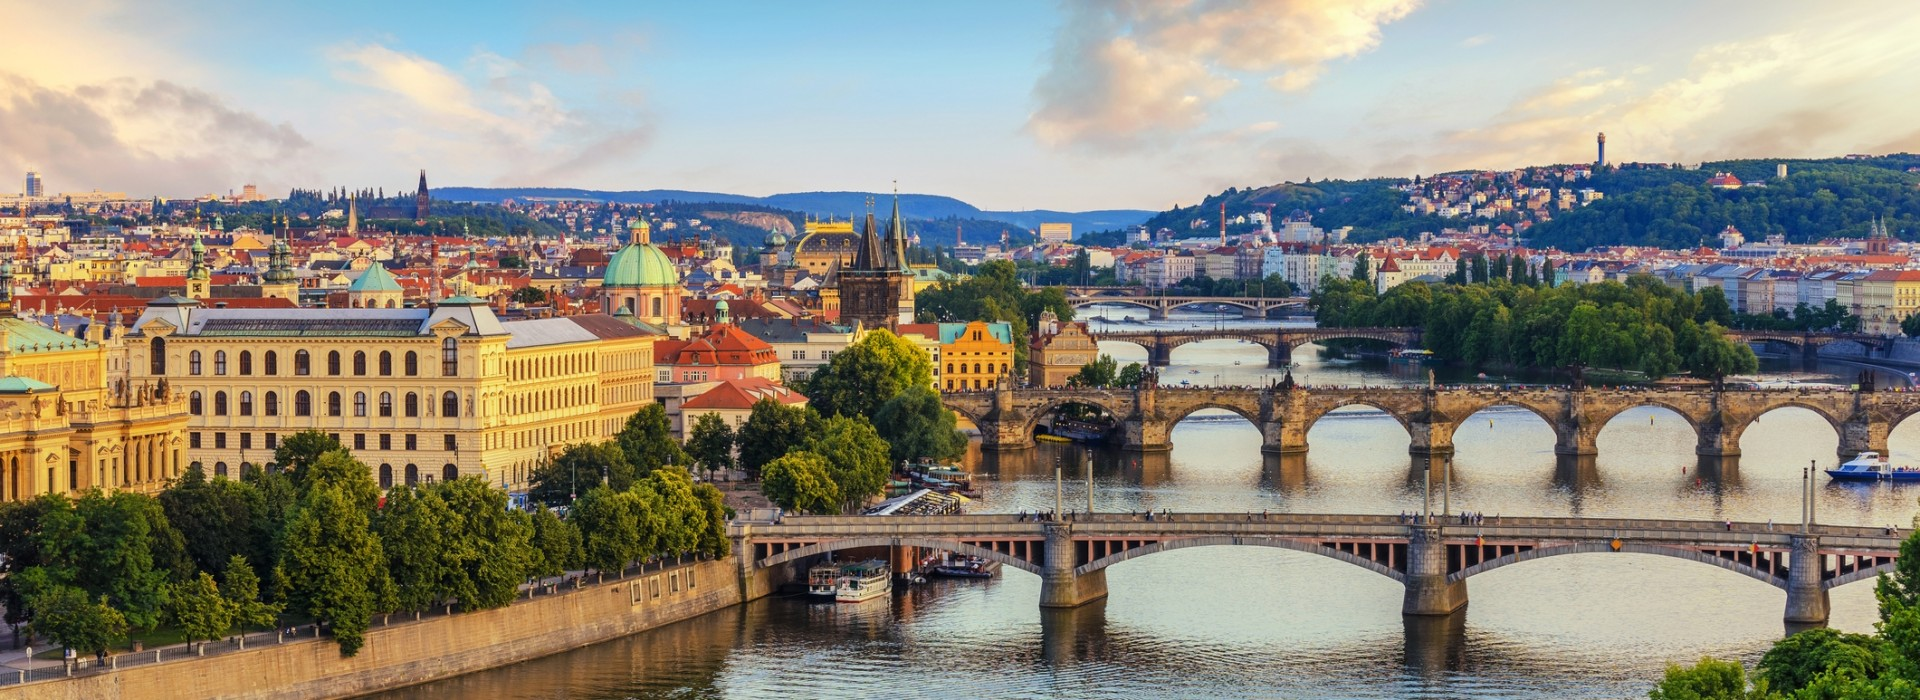 34 Best Czech Republic Tours Amp Holiday Packages 2018 2019 Compare Prices Bookmundi